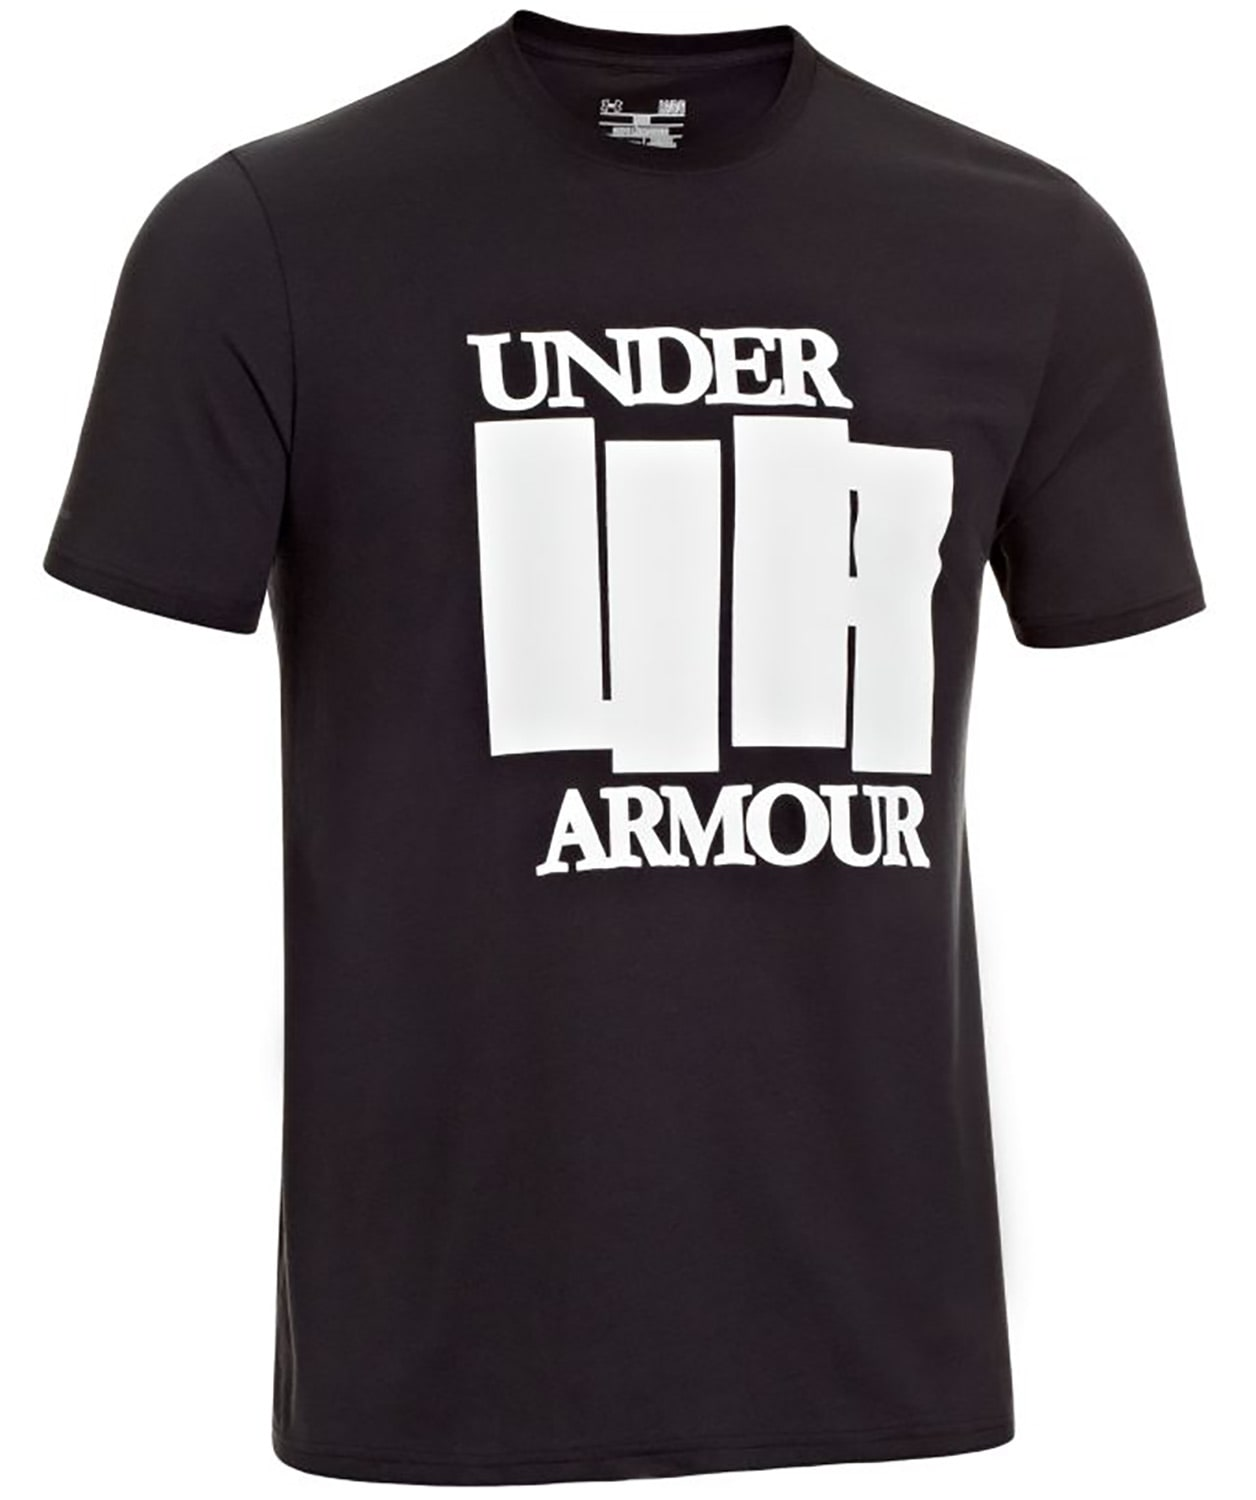 Under Armour Rotten T-Shirt ua3rot04bkw14zz-under-armour-t-shirts